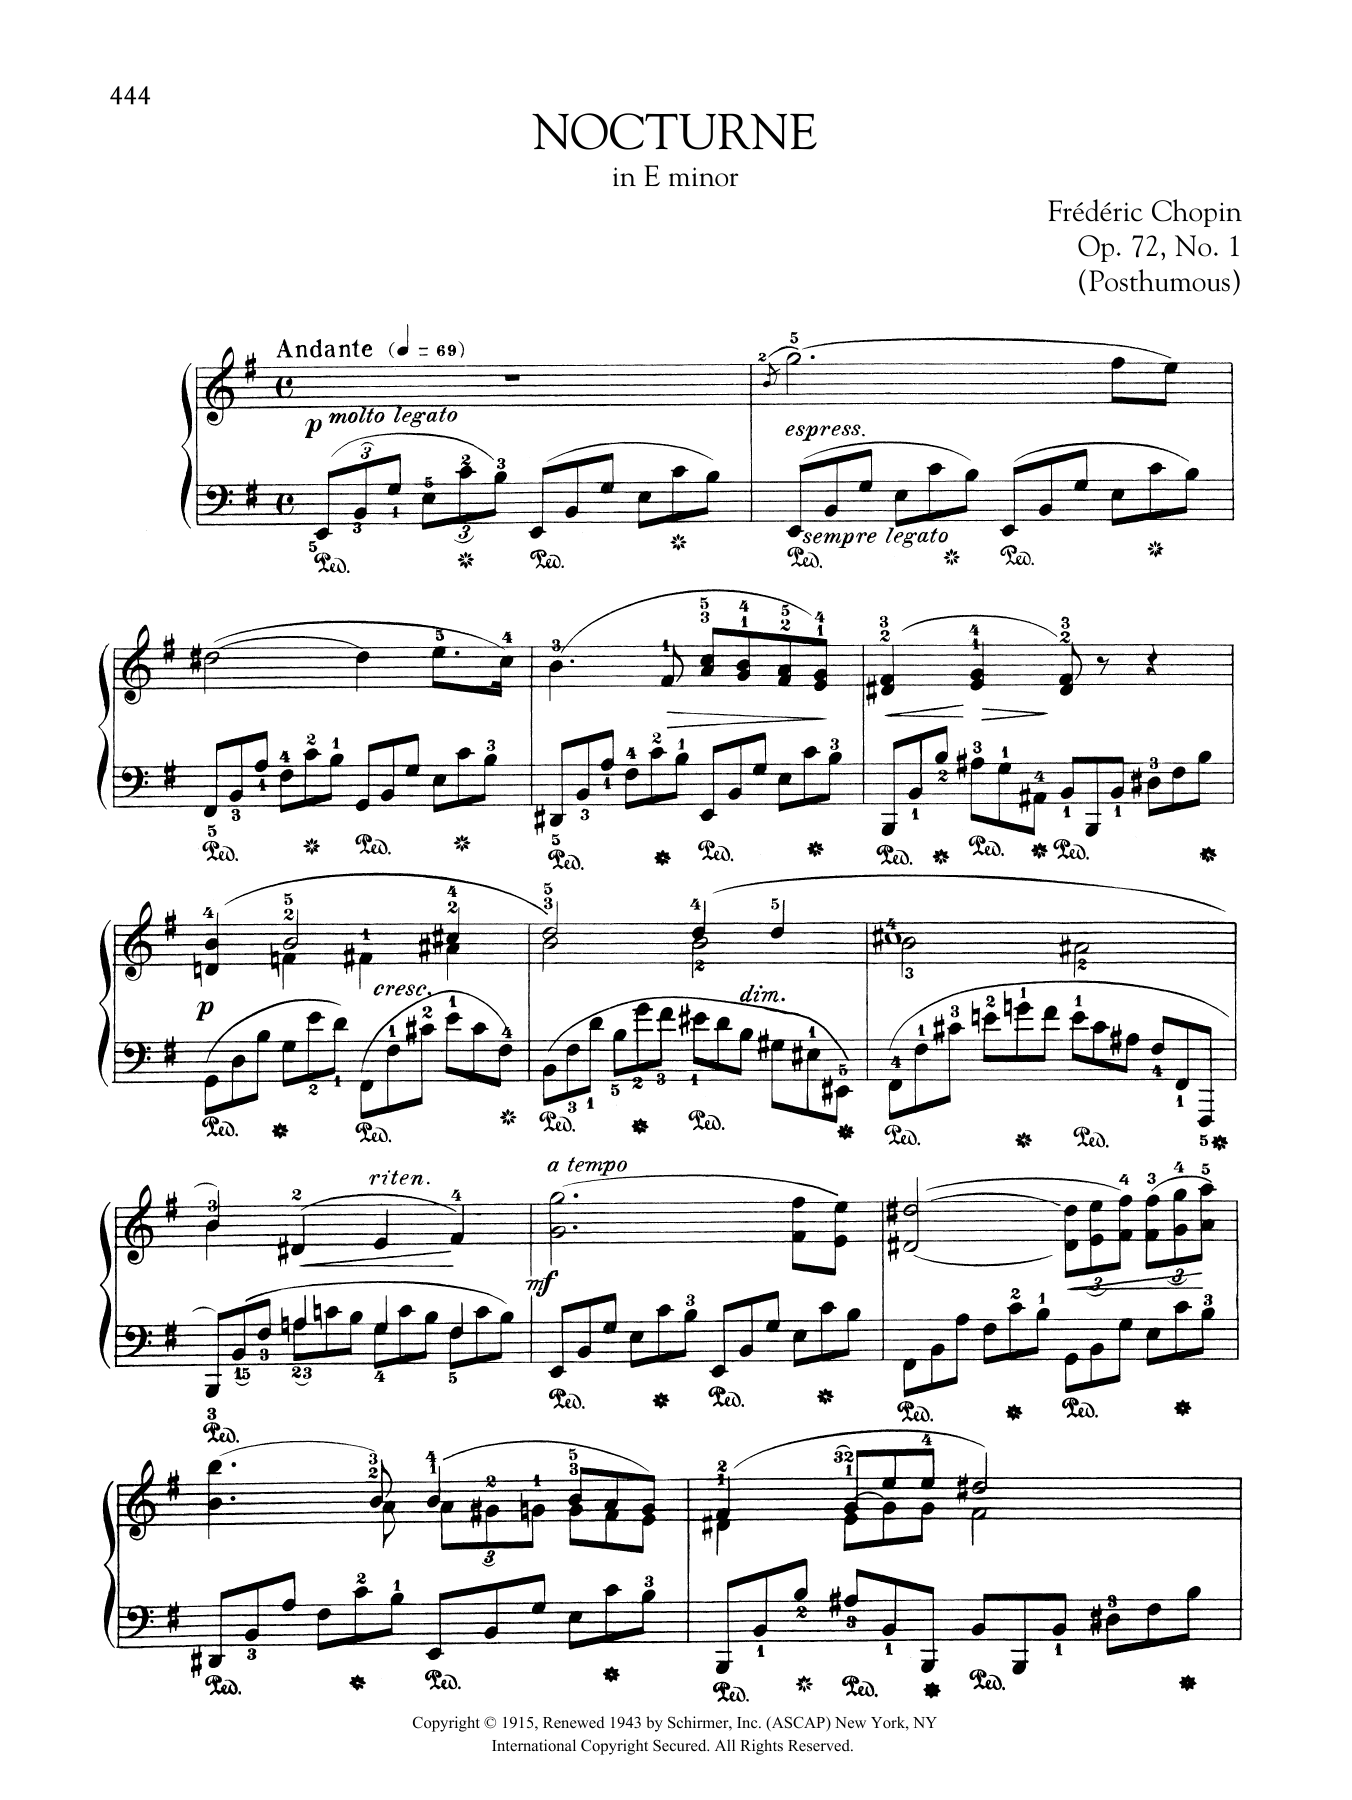 Nocturne in E minor, Op. 72, No. 1 (Posthumous) Sheet Music